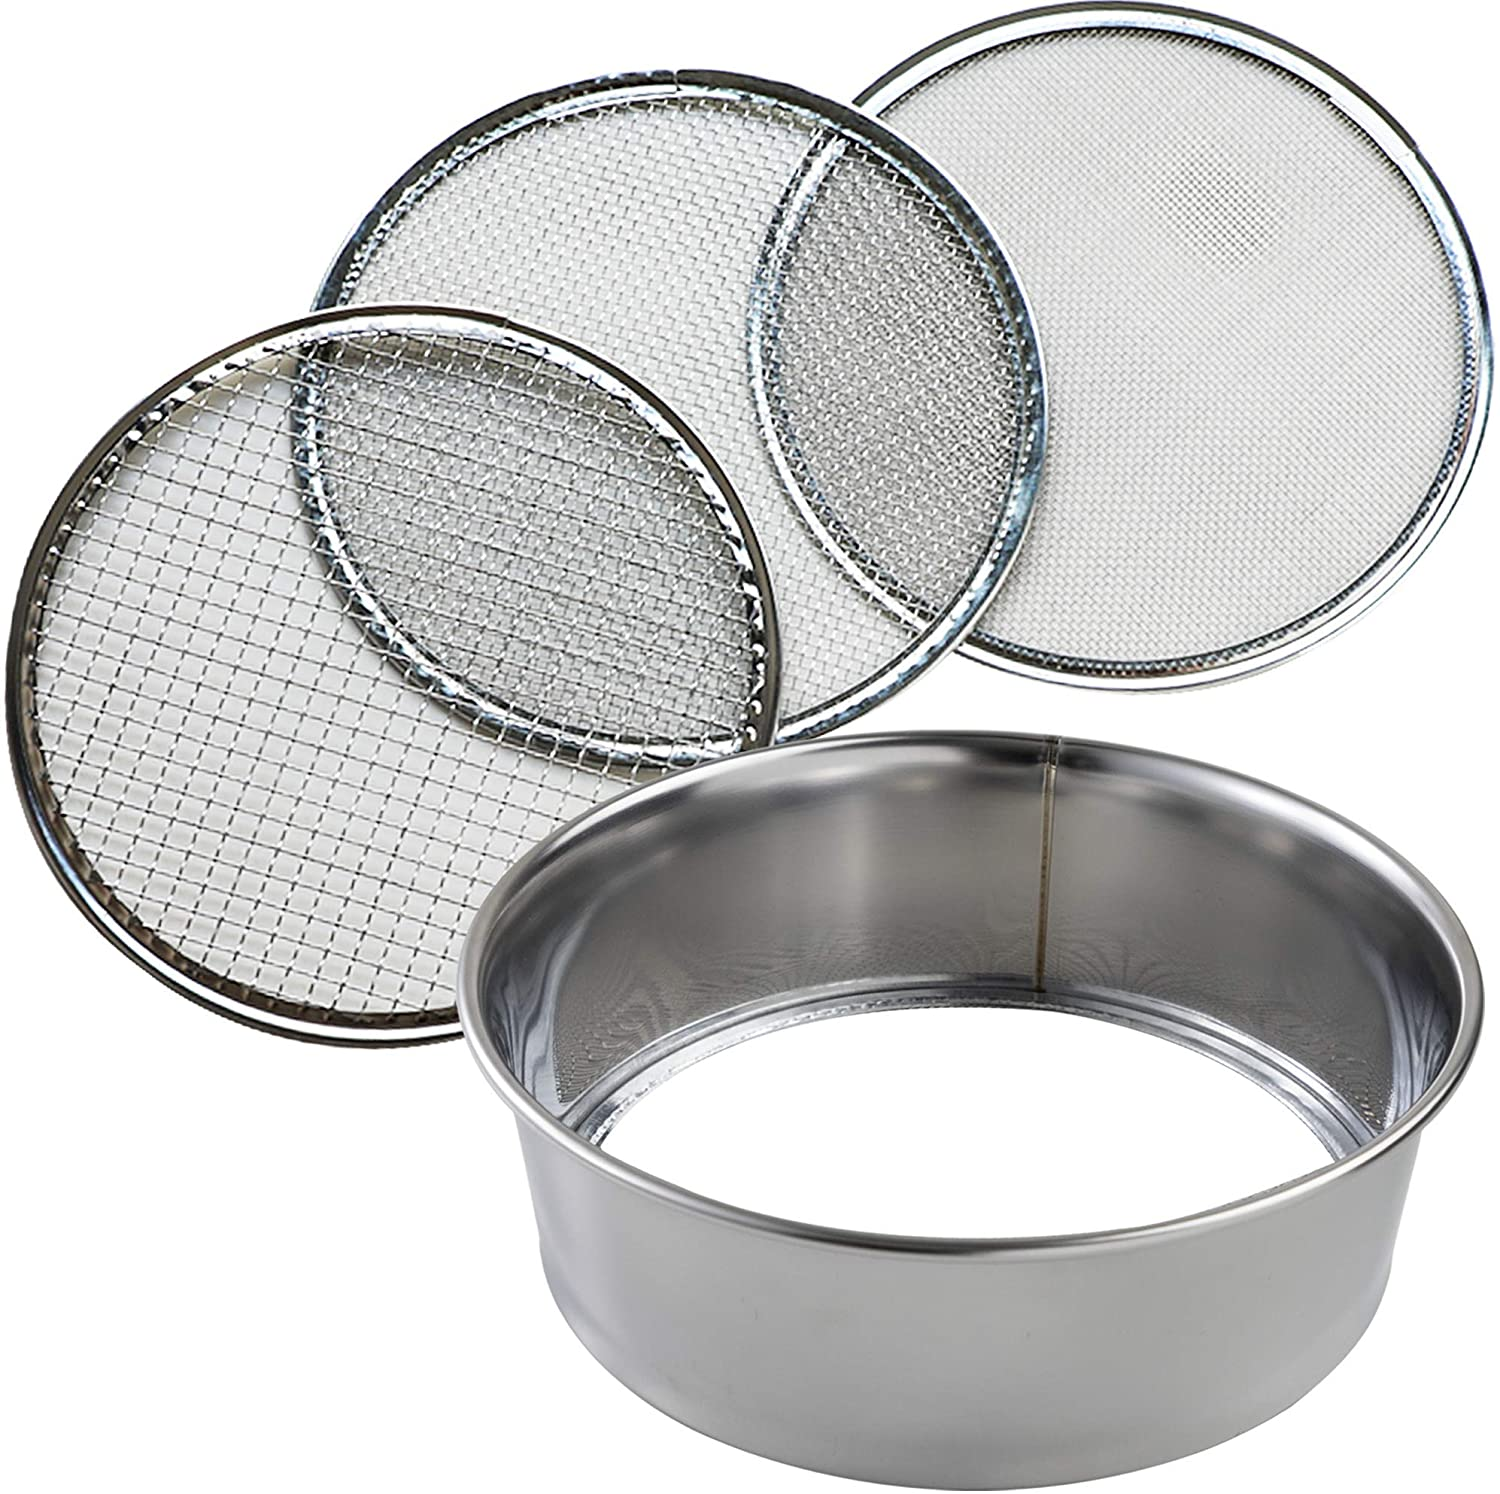 Hanafubuki Wazakura 3PCS Soil Sieve Set 8-1/4inch(210mm), Made in Japan, 3 Sieve Mesh Filter Sizes, Japanese Bonsai Gardening Tool - 8-1/4inch(210mm)